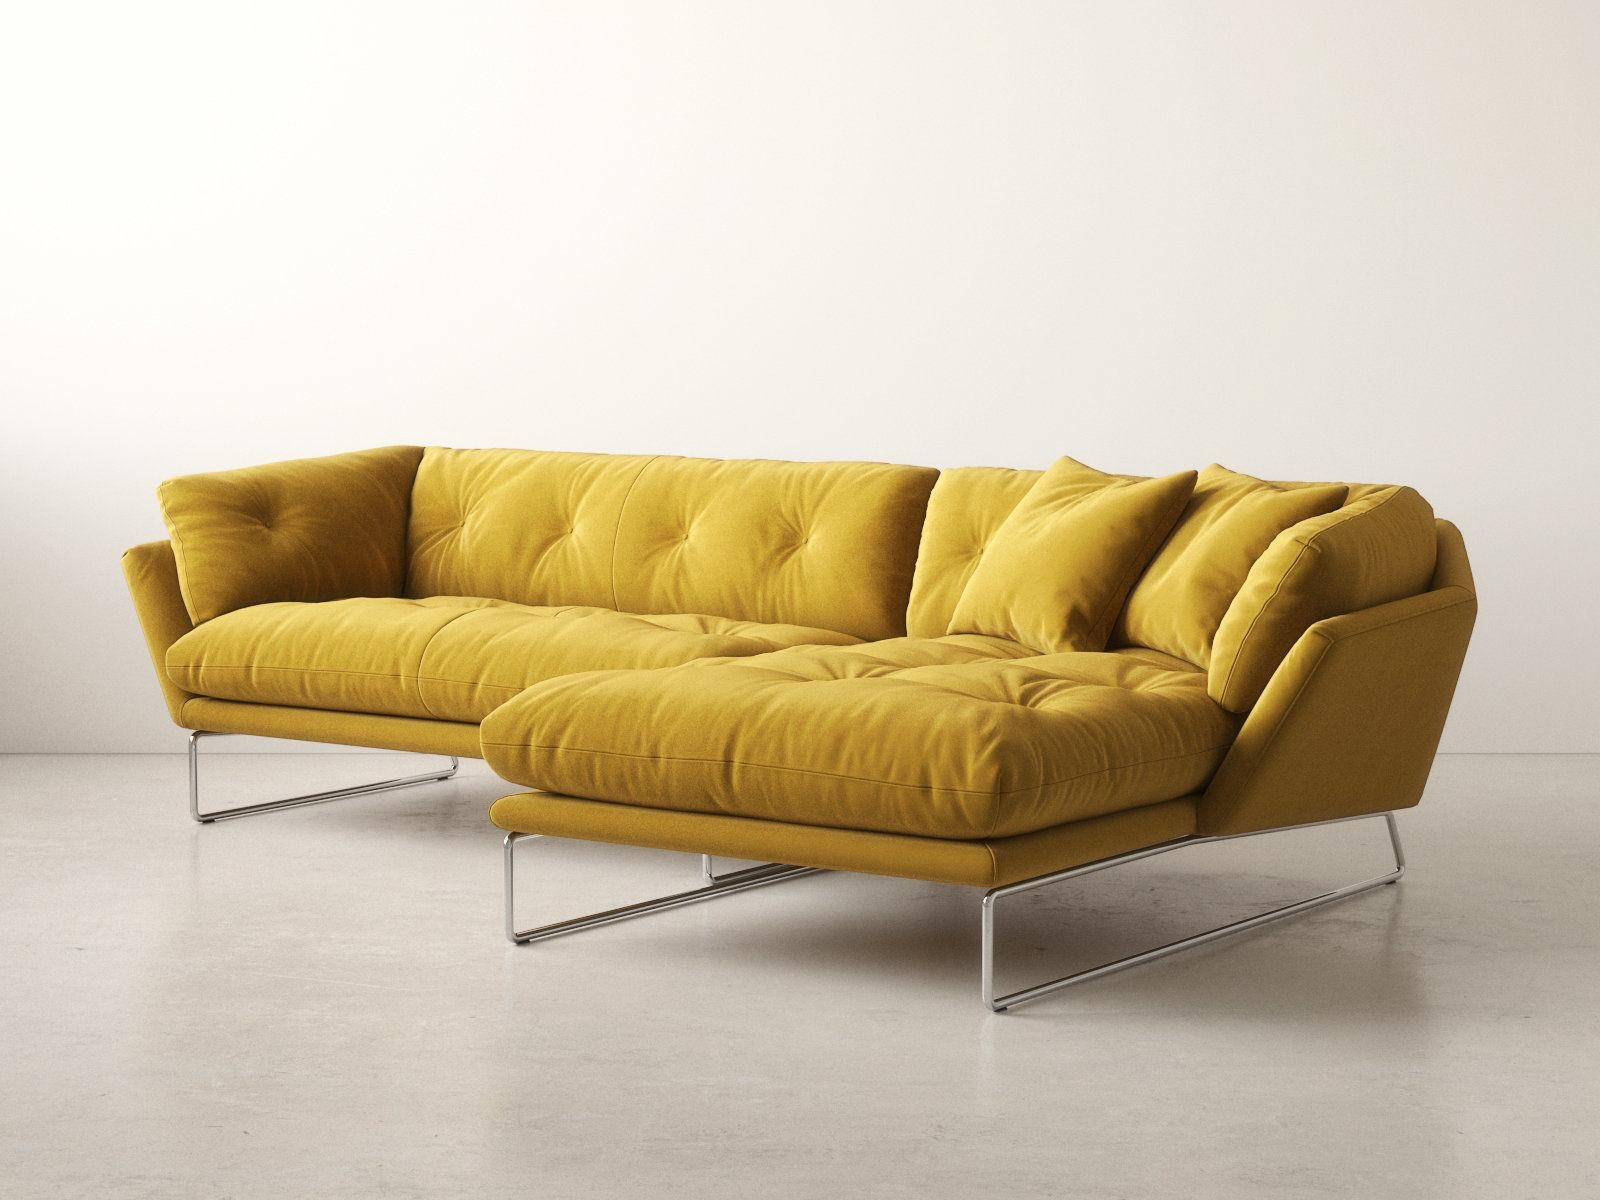 Low Height Sofas Normal Sofa Height Styling Chair Kursi Dimension Inside Low Height Sofas (View 6 of 7)